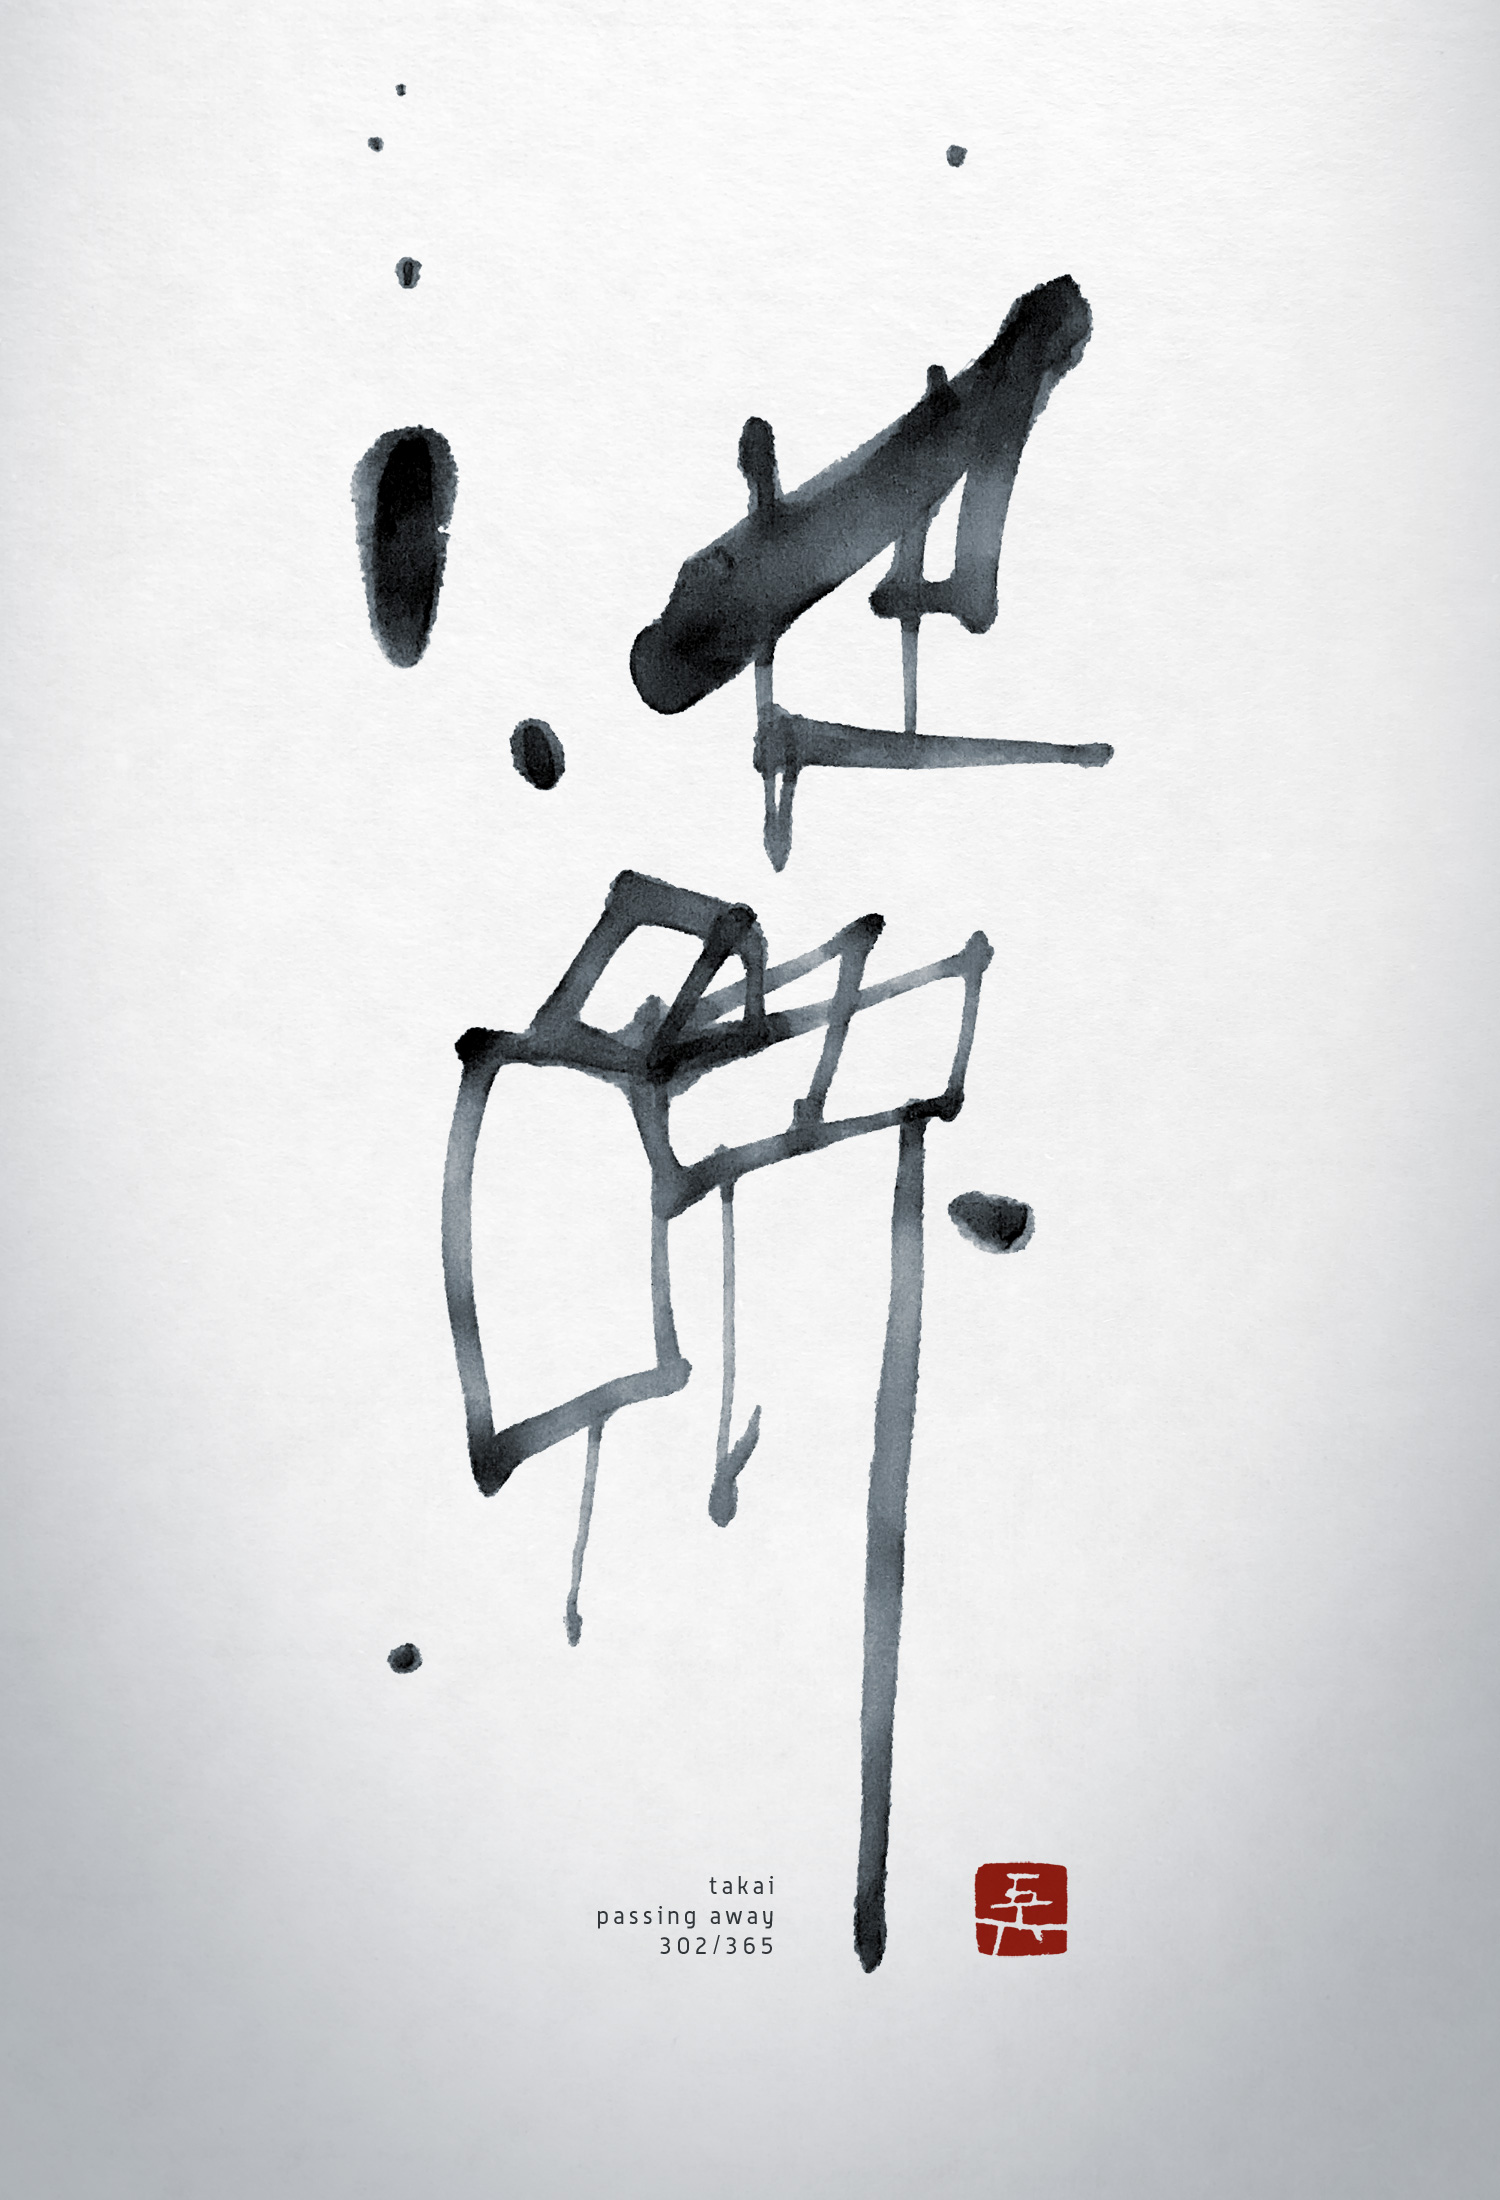 他界 | passing away 書道作品 japaneseart japanese calligraphy 書家 田川悟郎 Goroh Tagawa